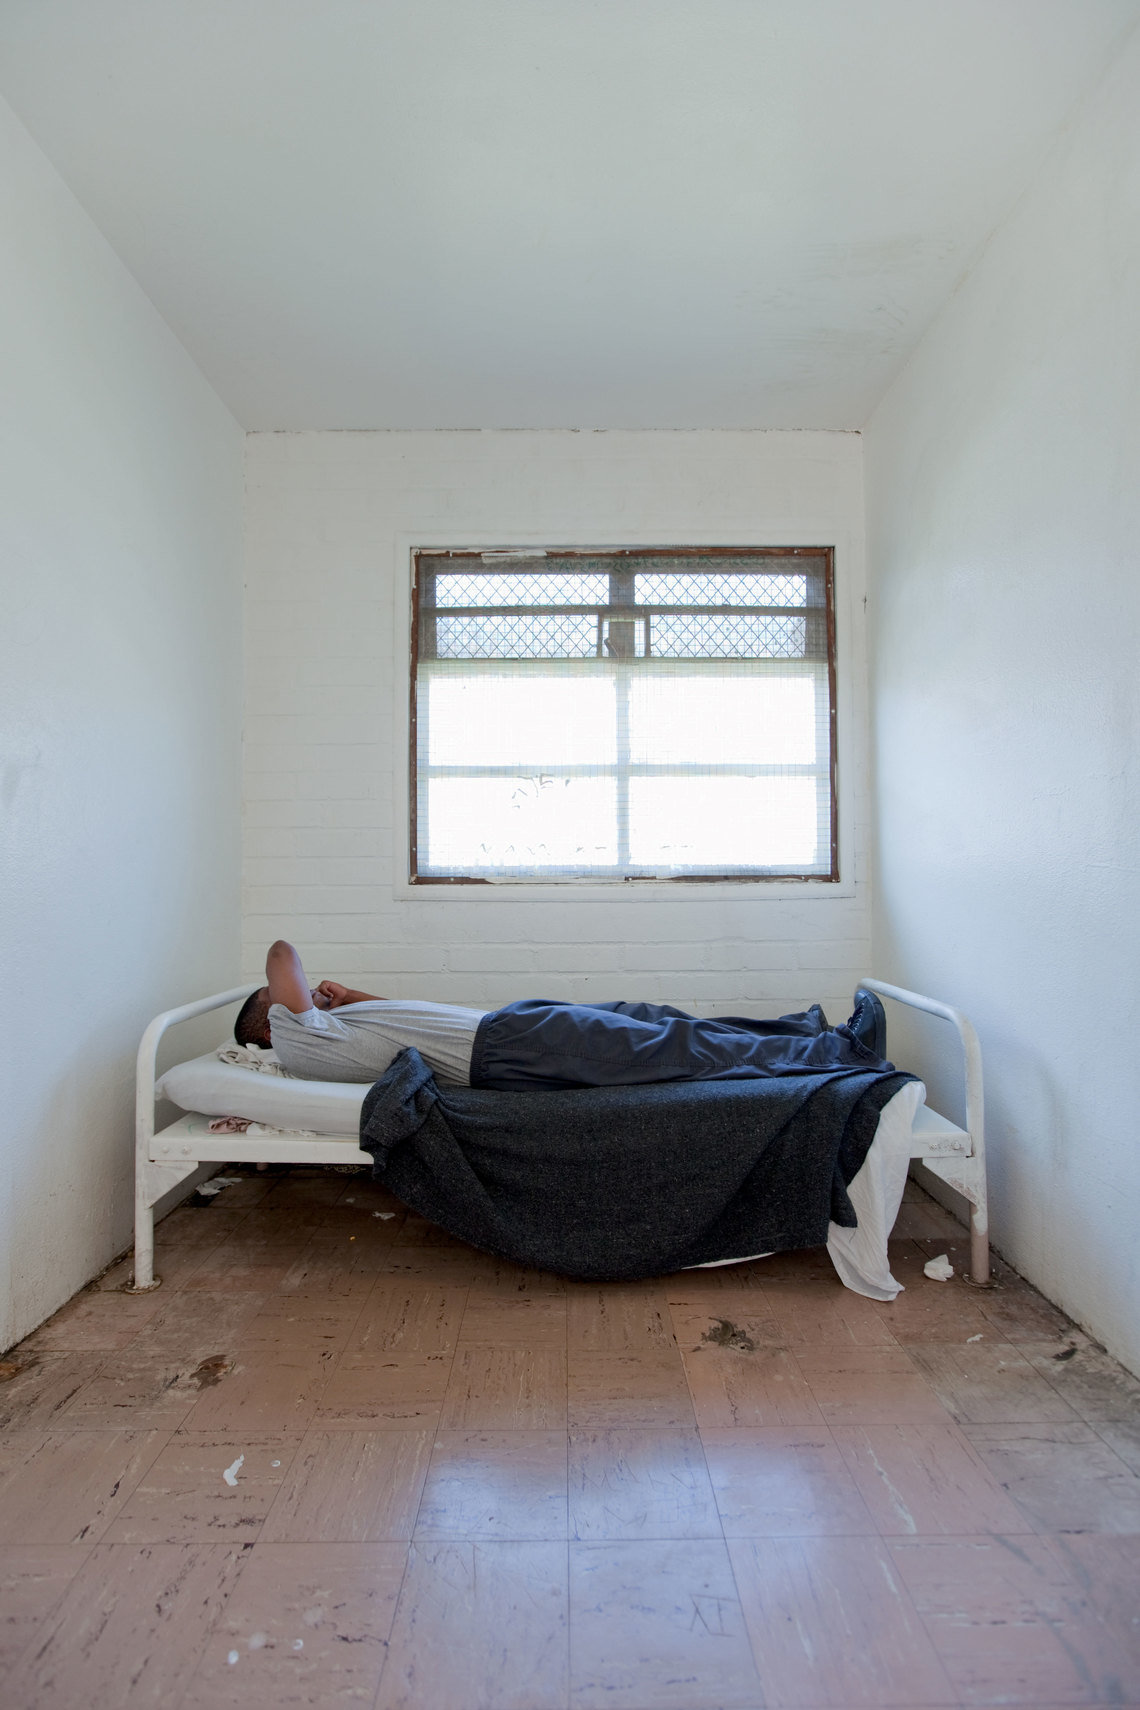 A 17-year-old at Central Juvenile Hall in Los Angeles.